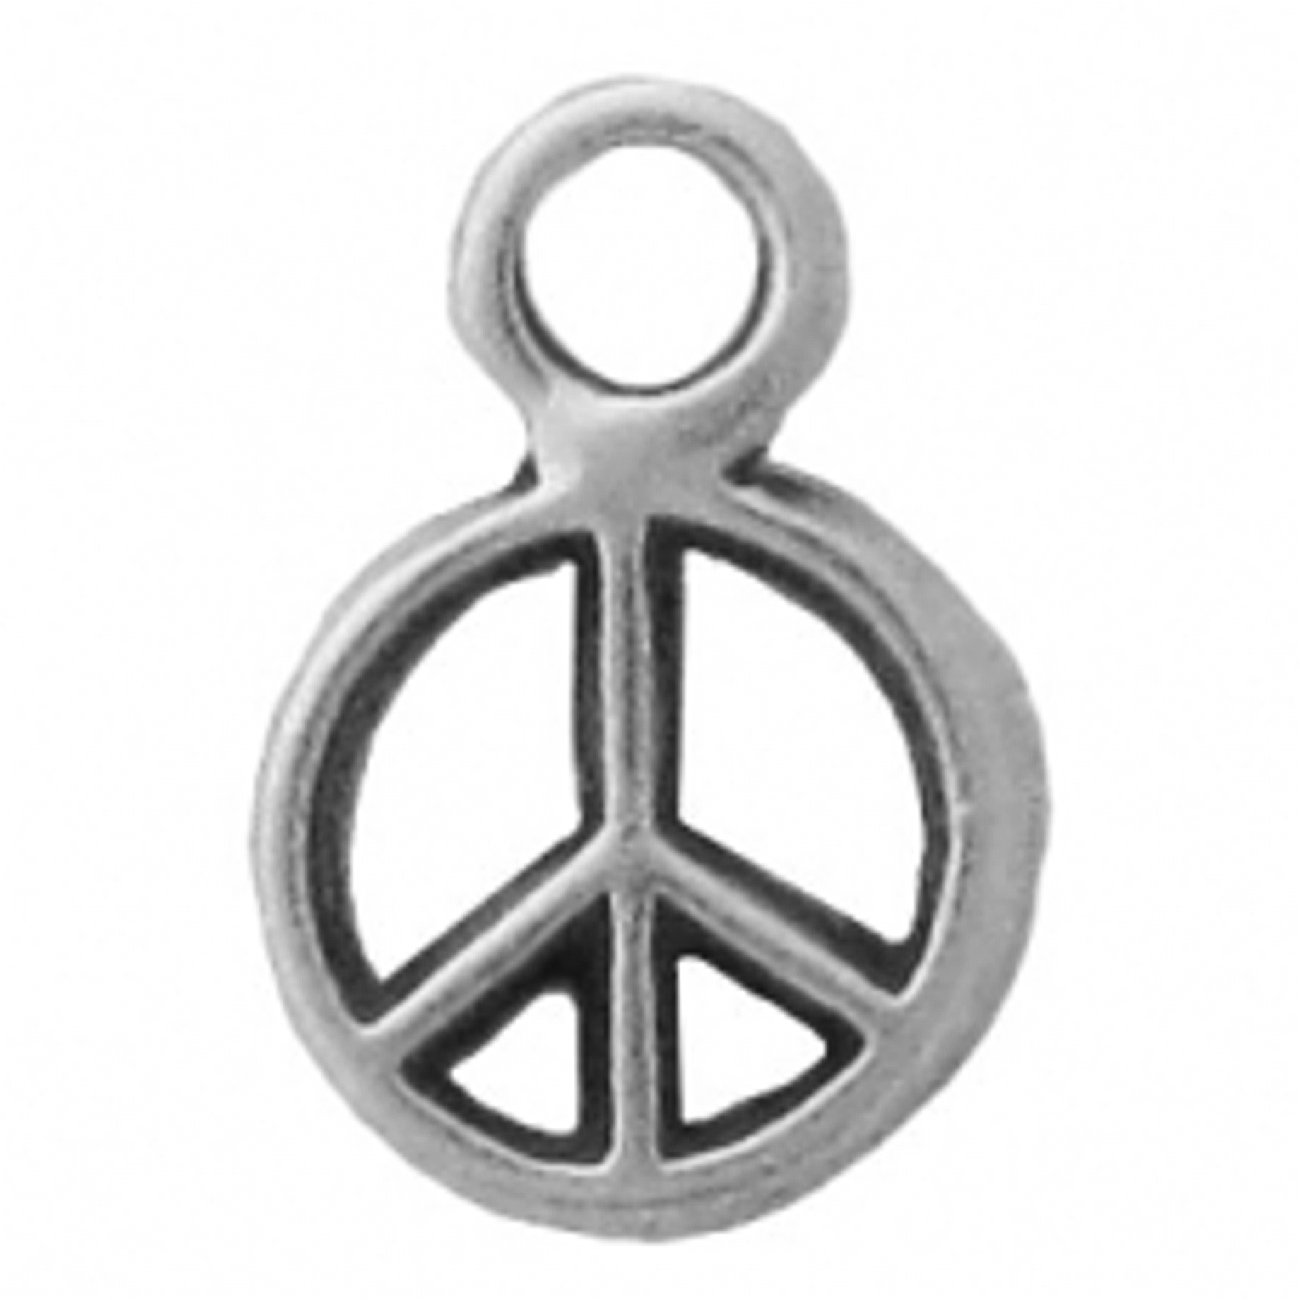 Sterling Silver 7 4.5mm Charm Bracelet With Attached Small Peace Symbol Sign Charm